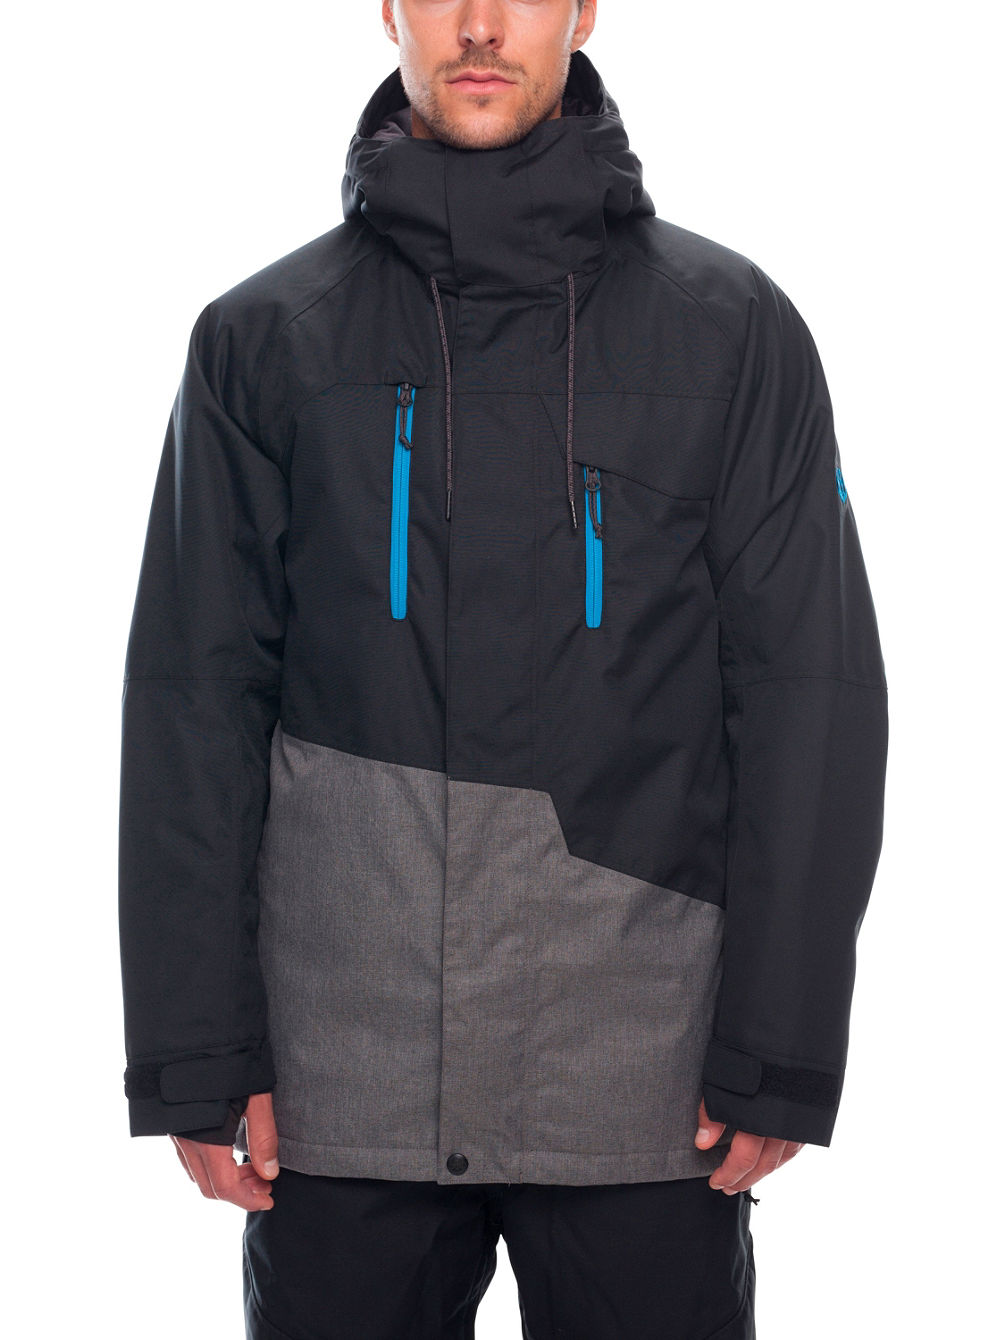 Geo Insulated Jacket